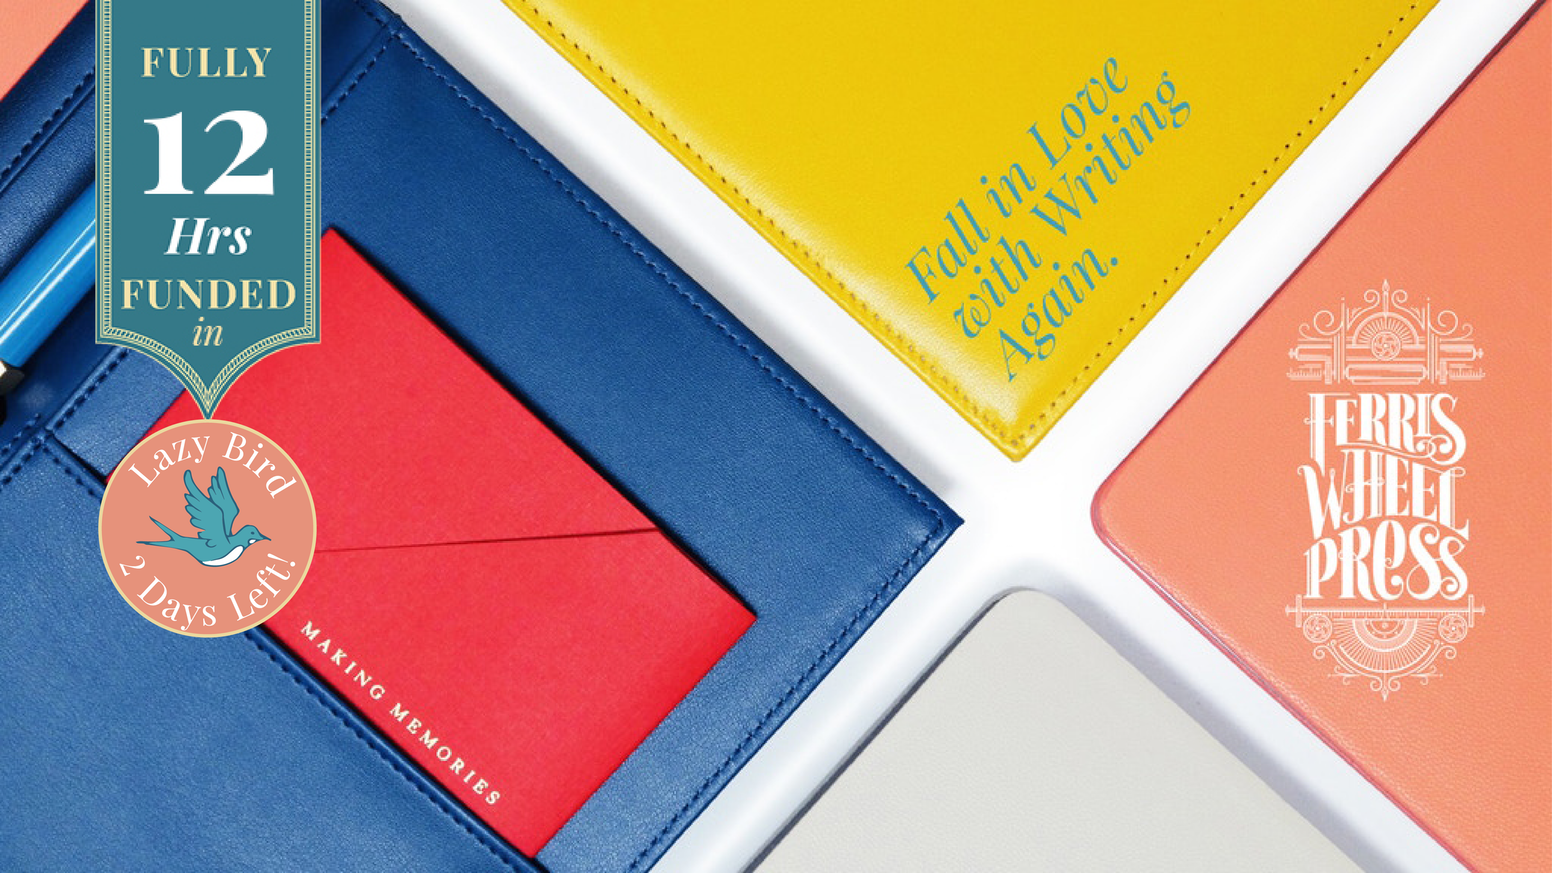 The most inspiring notebook collection designed for the Left and Right brained. Which side are you on?